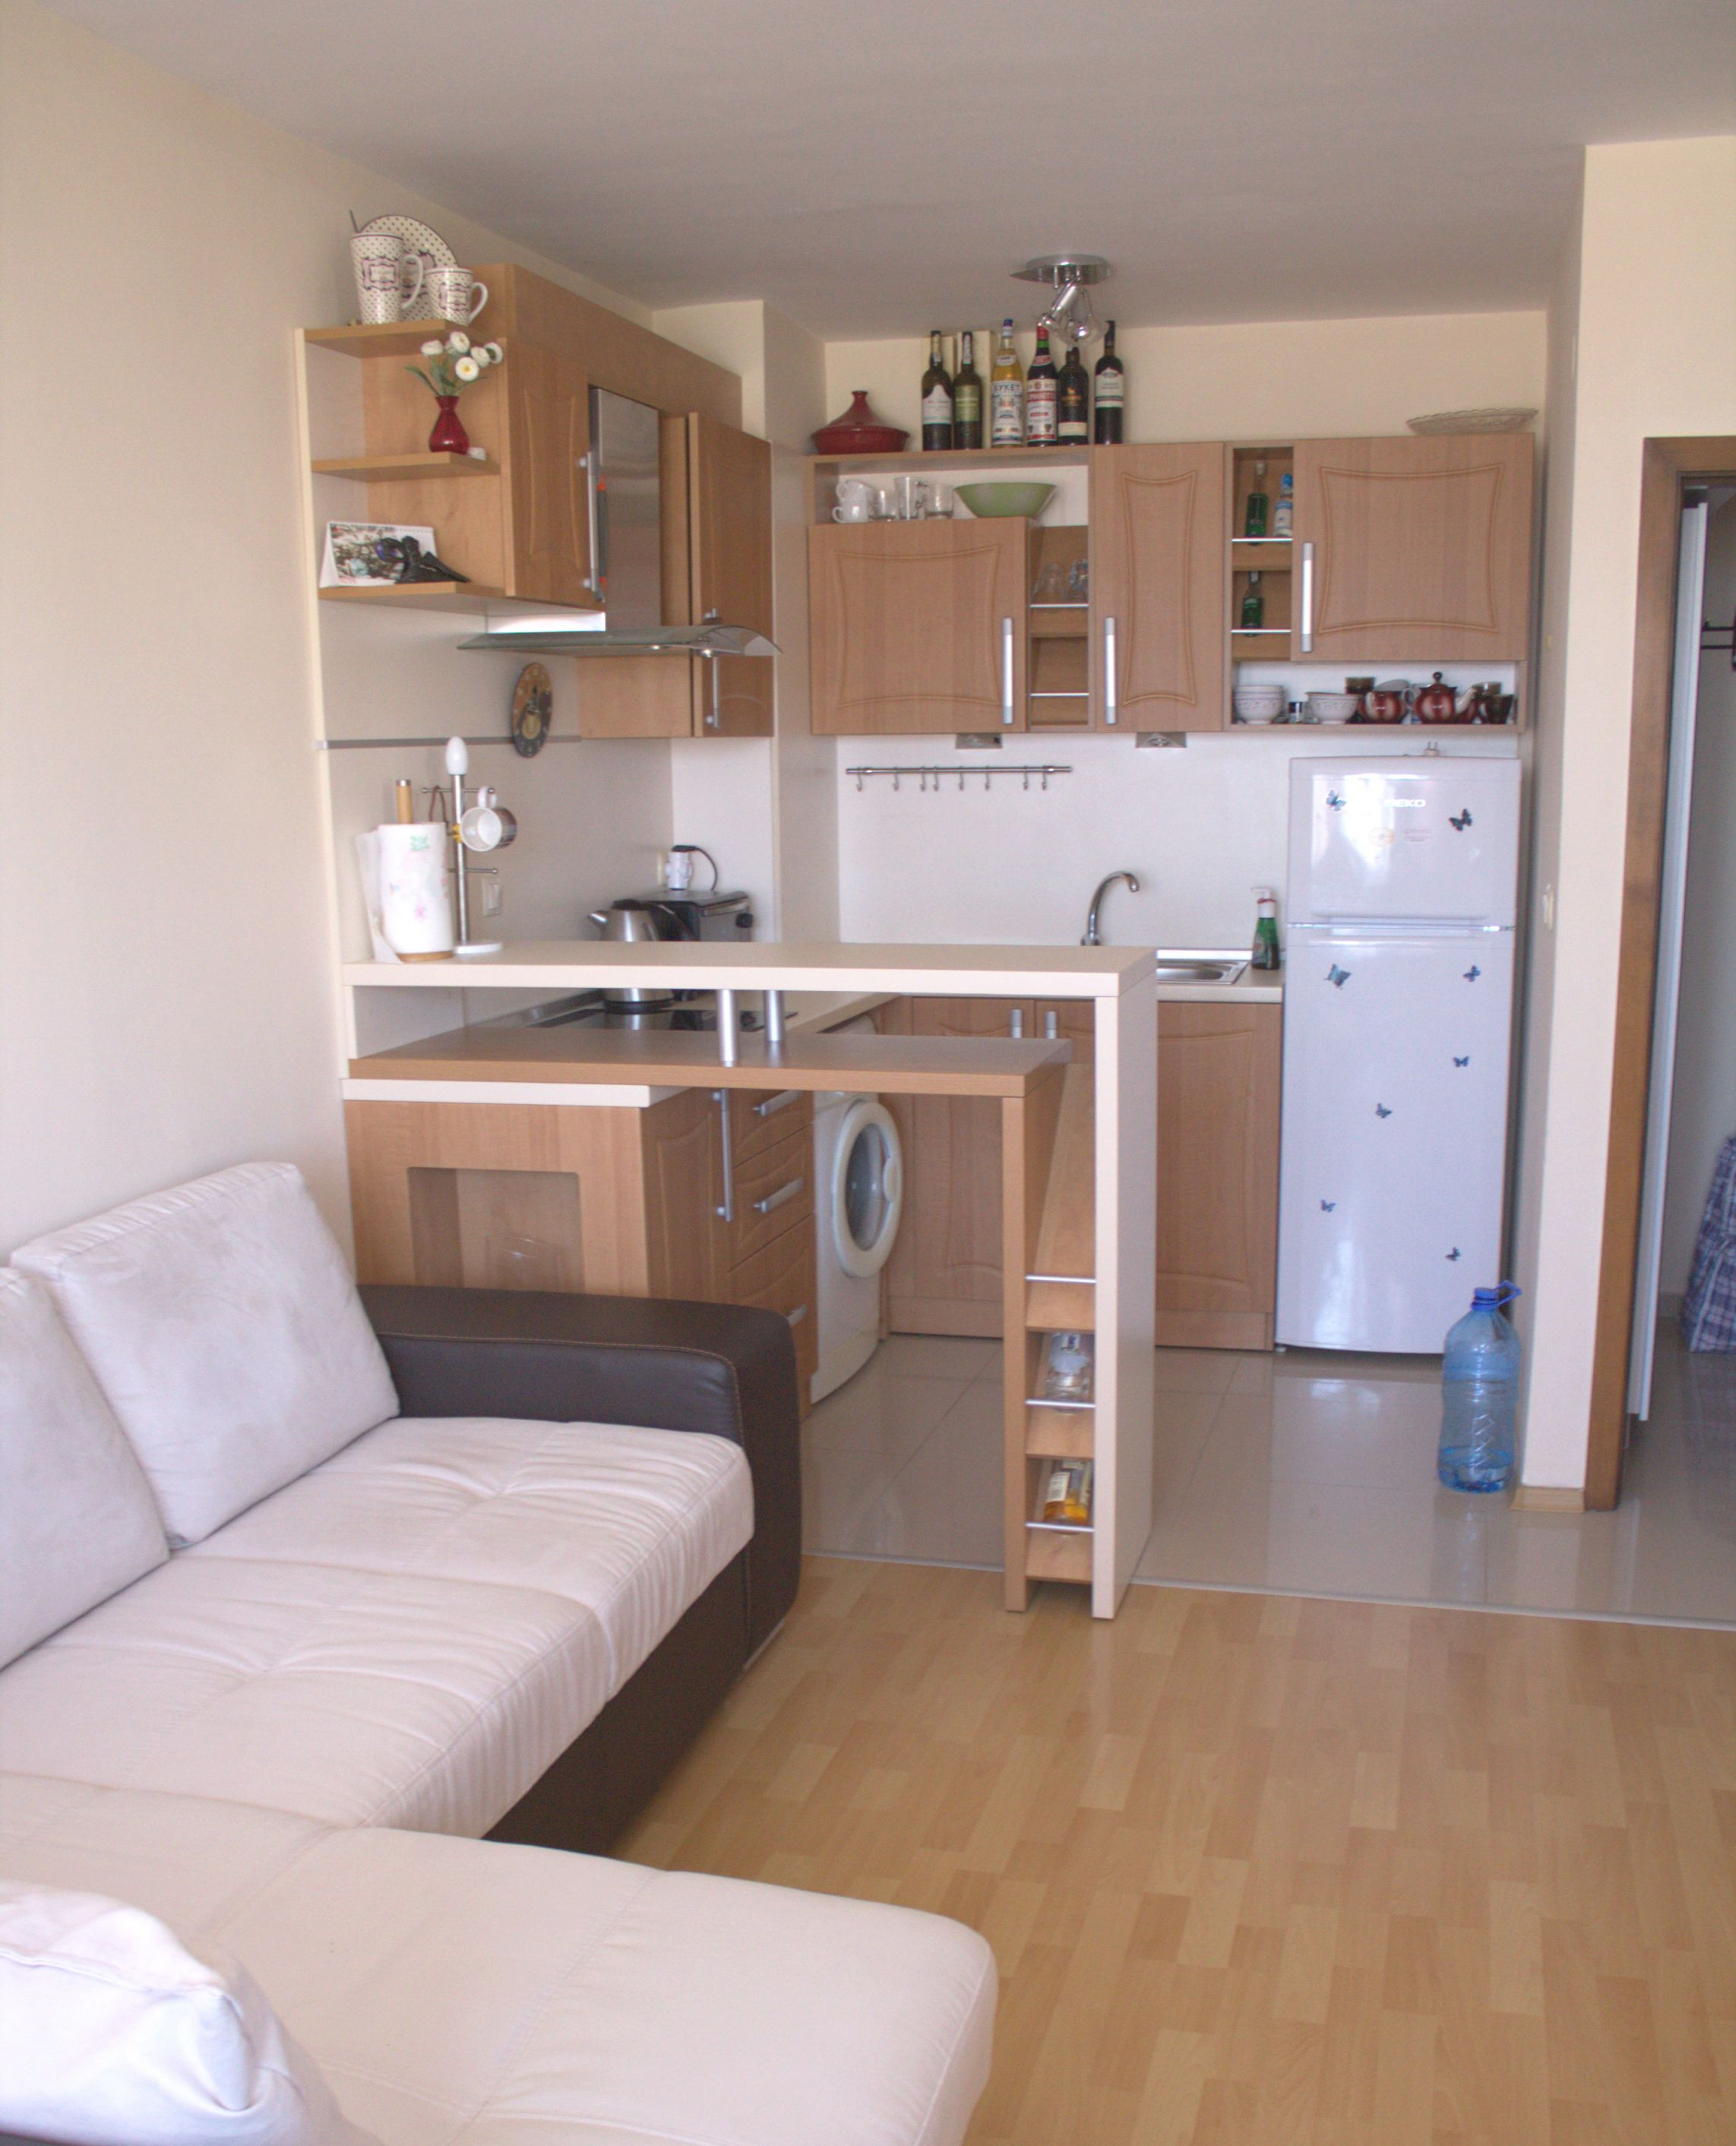 One-Bedroom Fully Furnished Apartment With Sea Views   Vip intended for One Bedroom Furnished Apartment